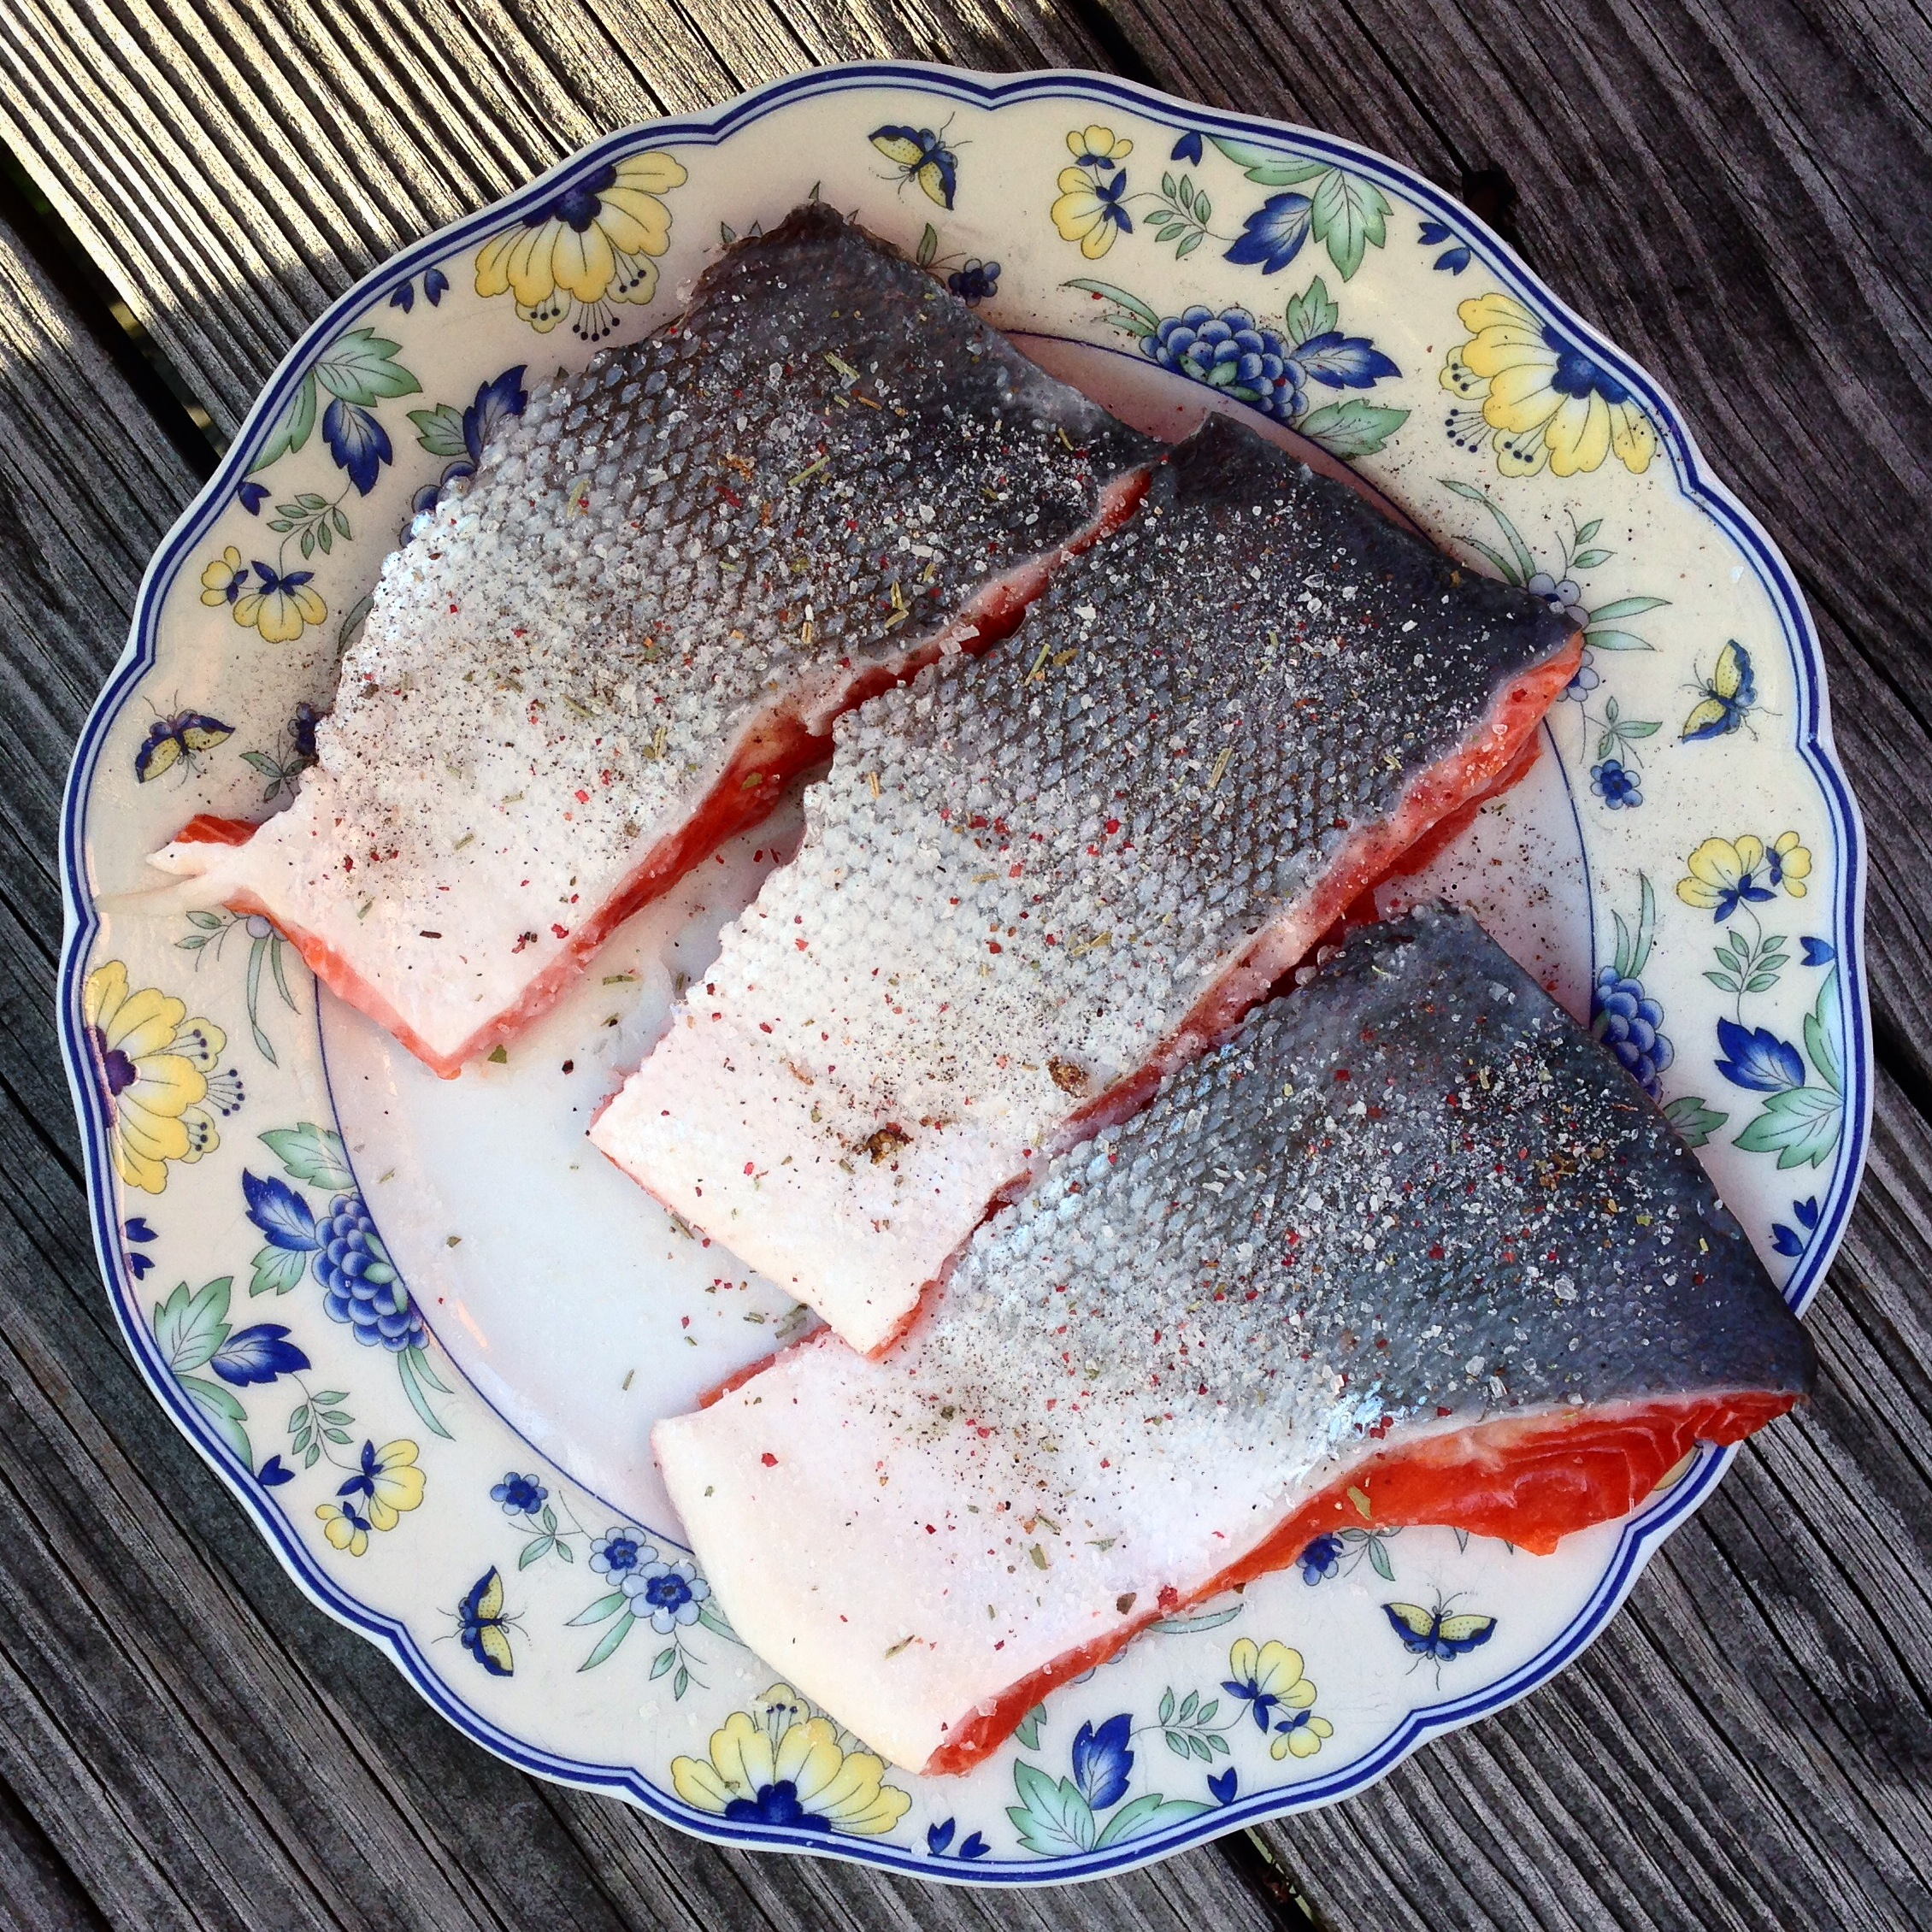 Wild Caught Alaskan Sockeye Salmon prepped with organic coconut oil and sea salt with spices